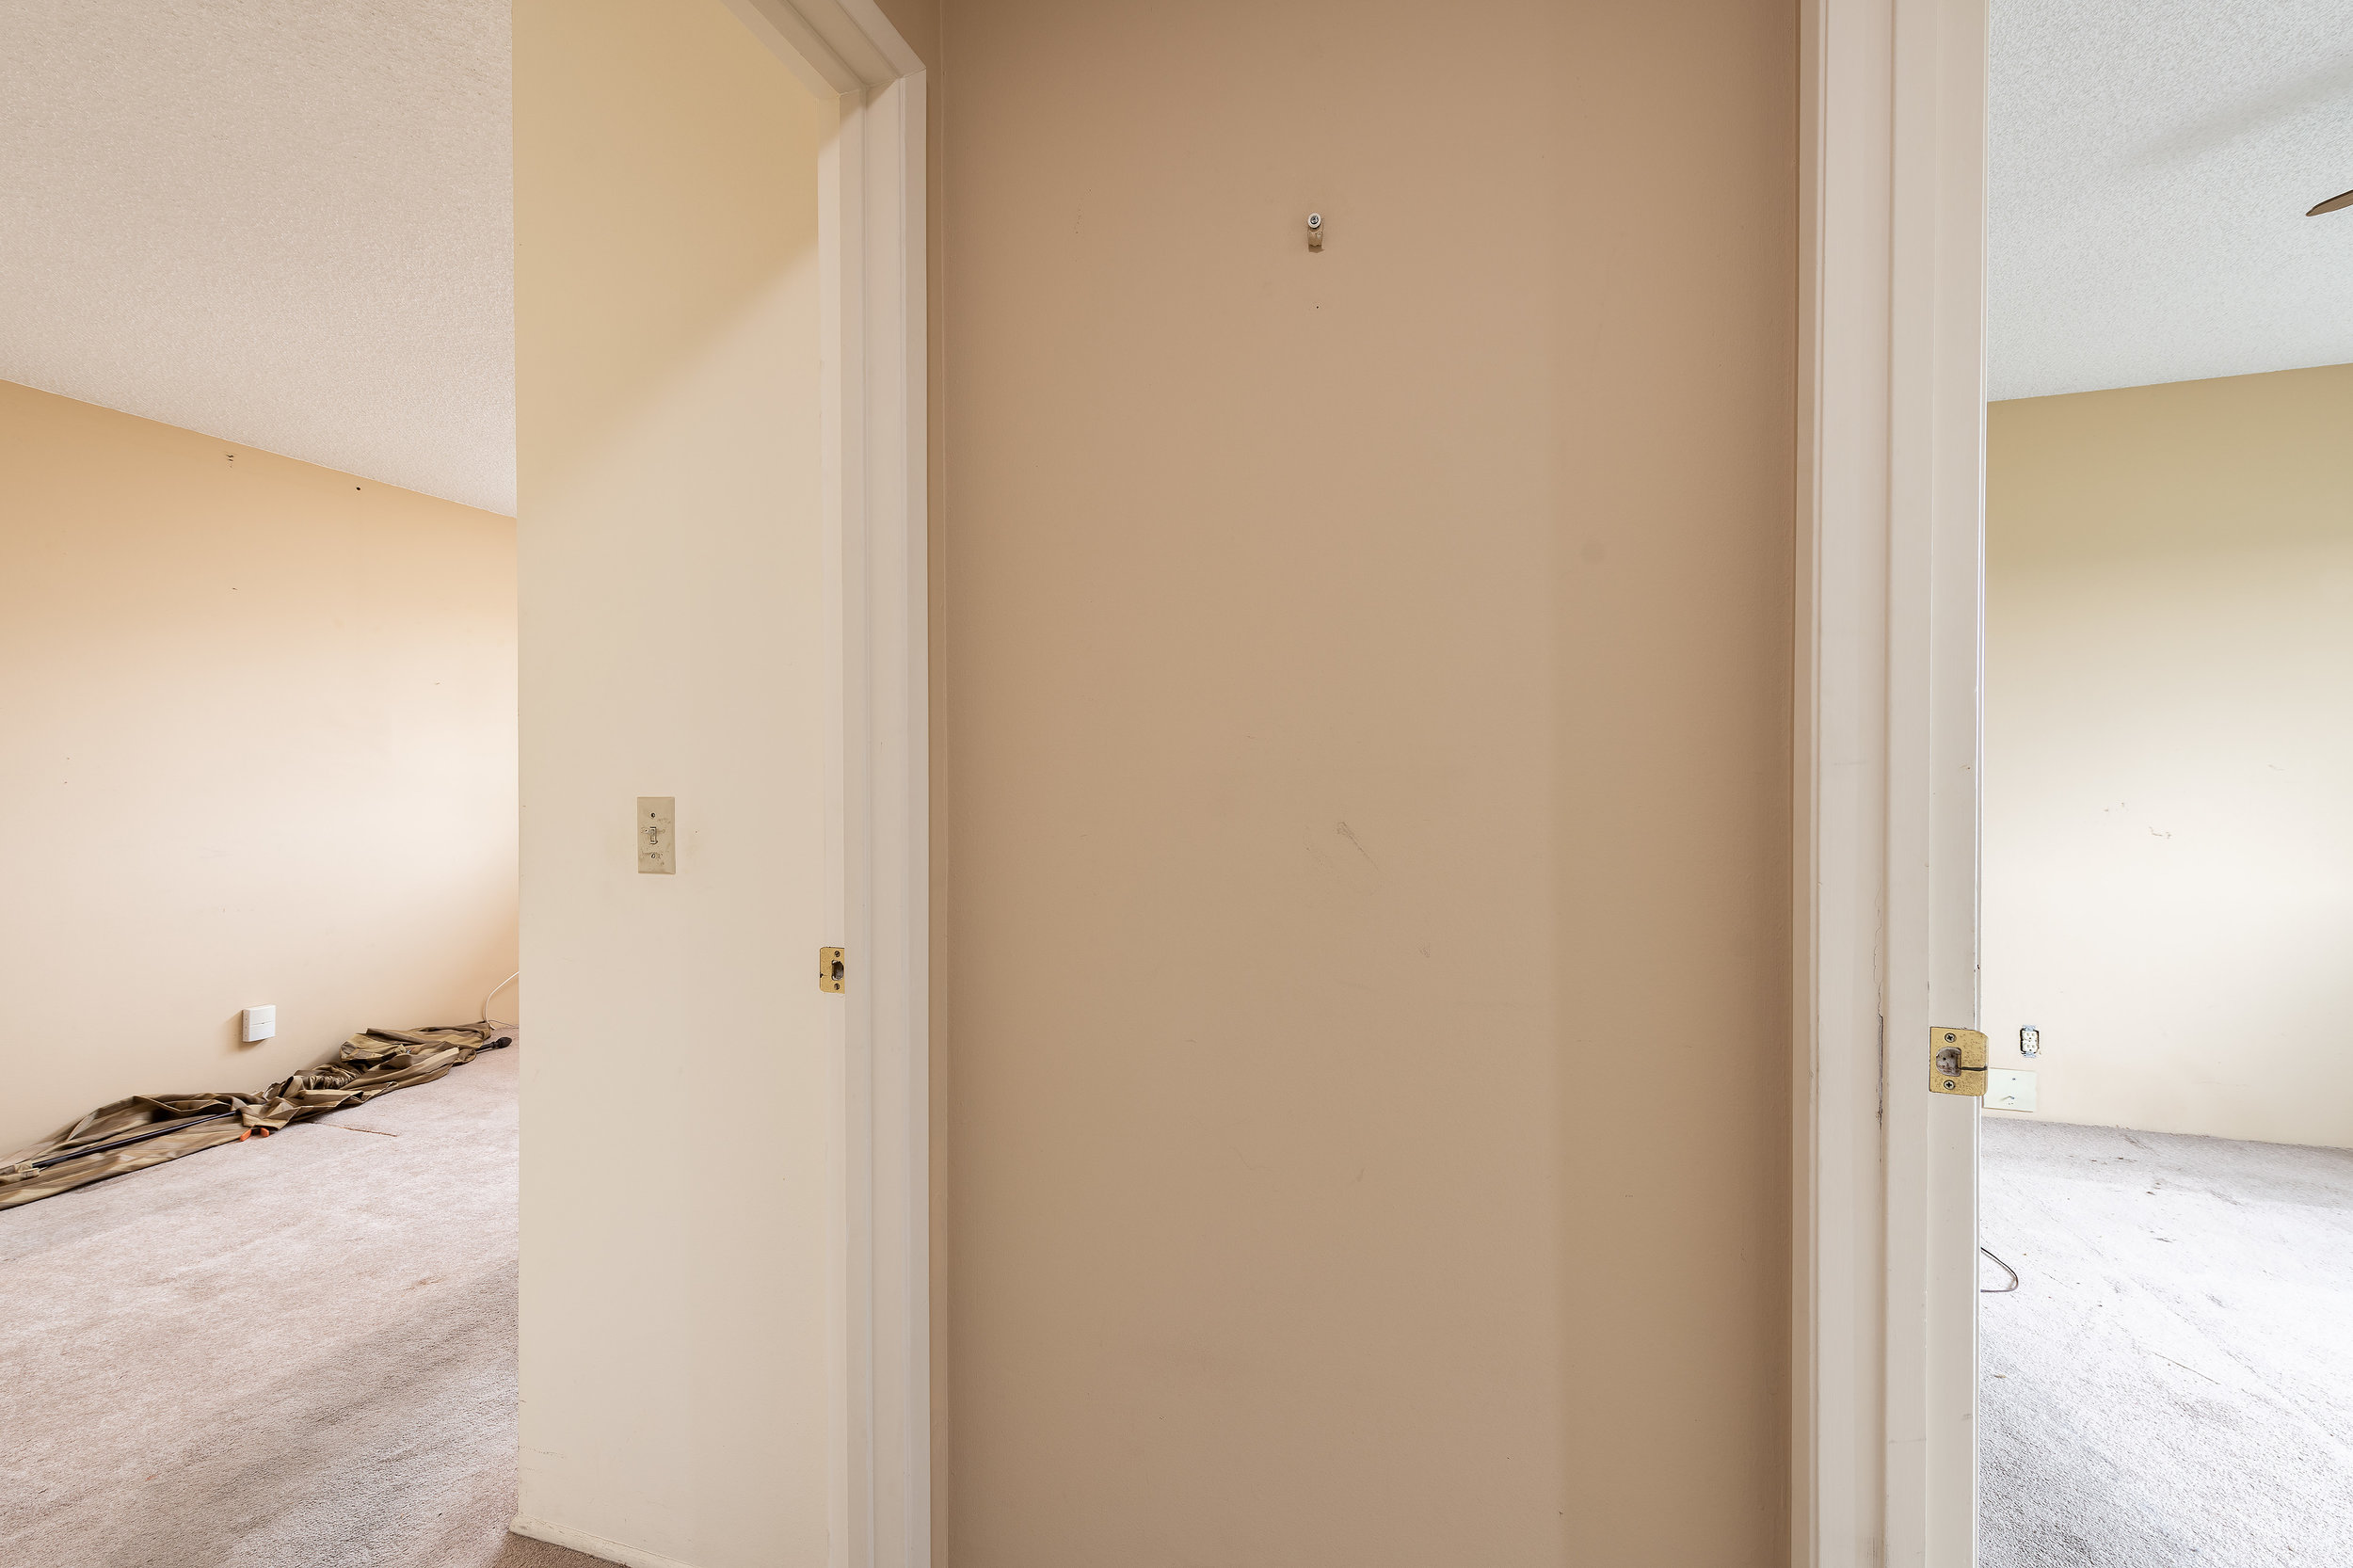 BEFORE   Wall separating the master bedroom and second bedroom